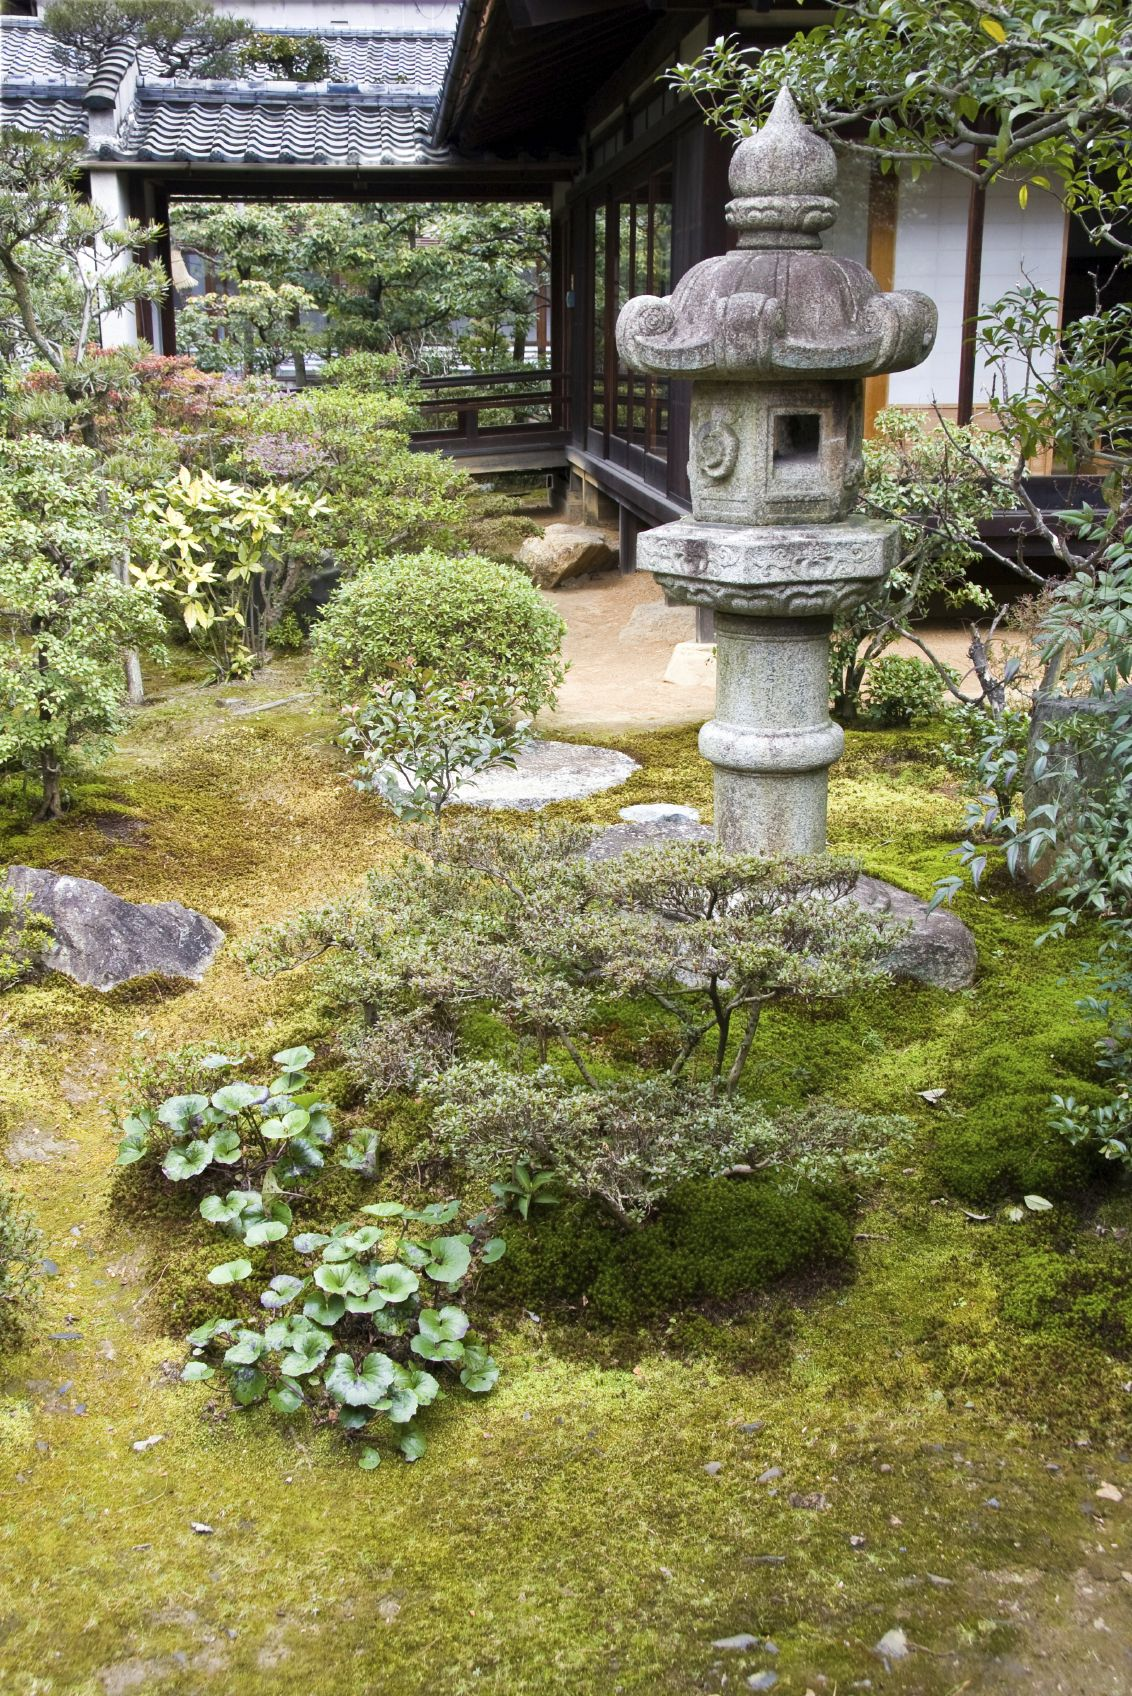 Beautiful Creating Zen Gardens Is A Great Way To Reduce Stress, Improve Your Focus,  And